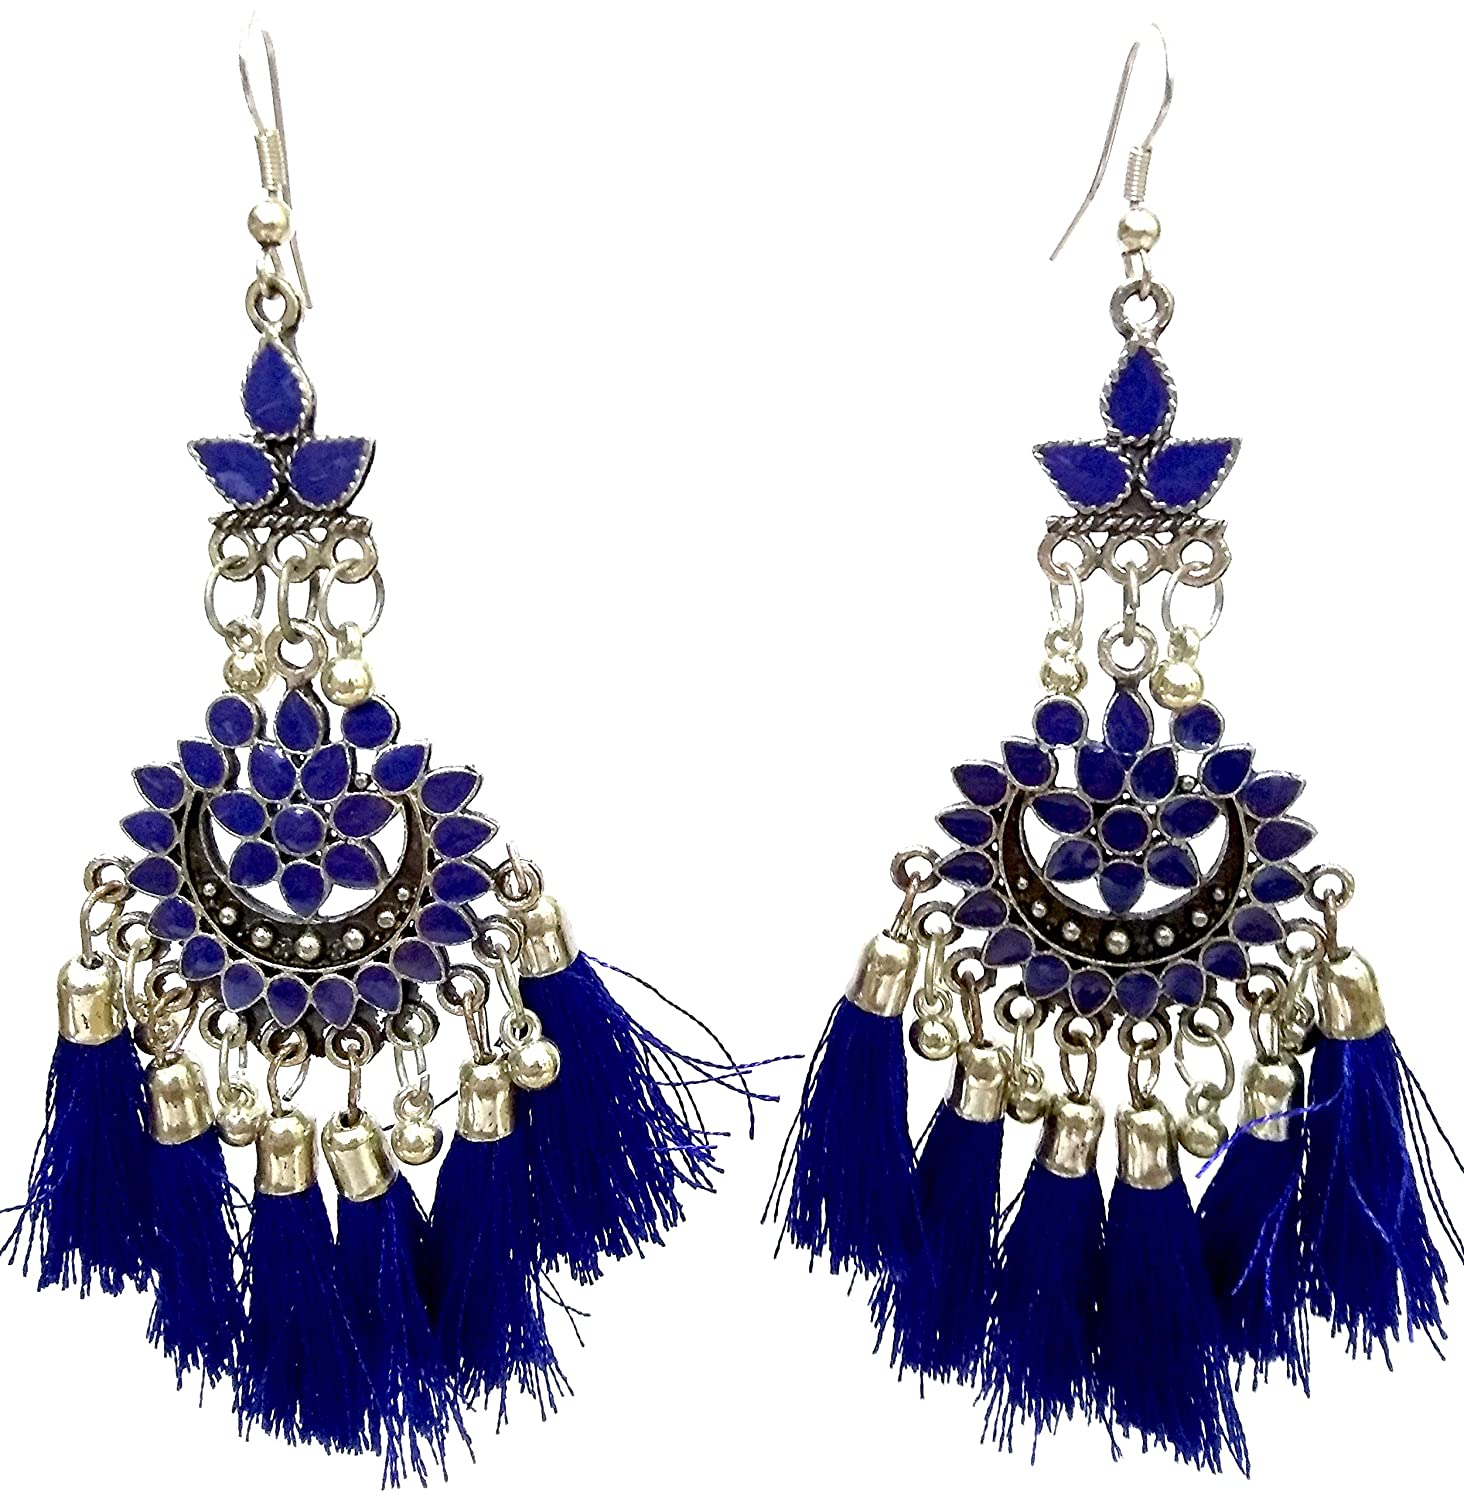 DESI HAWKER Silver Oxidized Earring Bali Jhumki Jhumka Jewelry Bollywood Drop Dangle Afghani Tassels NI-144